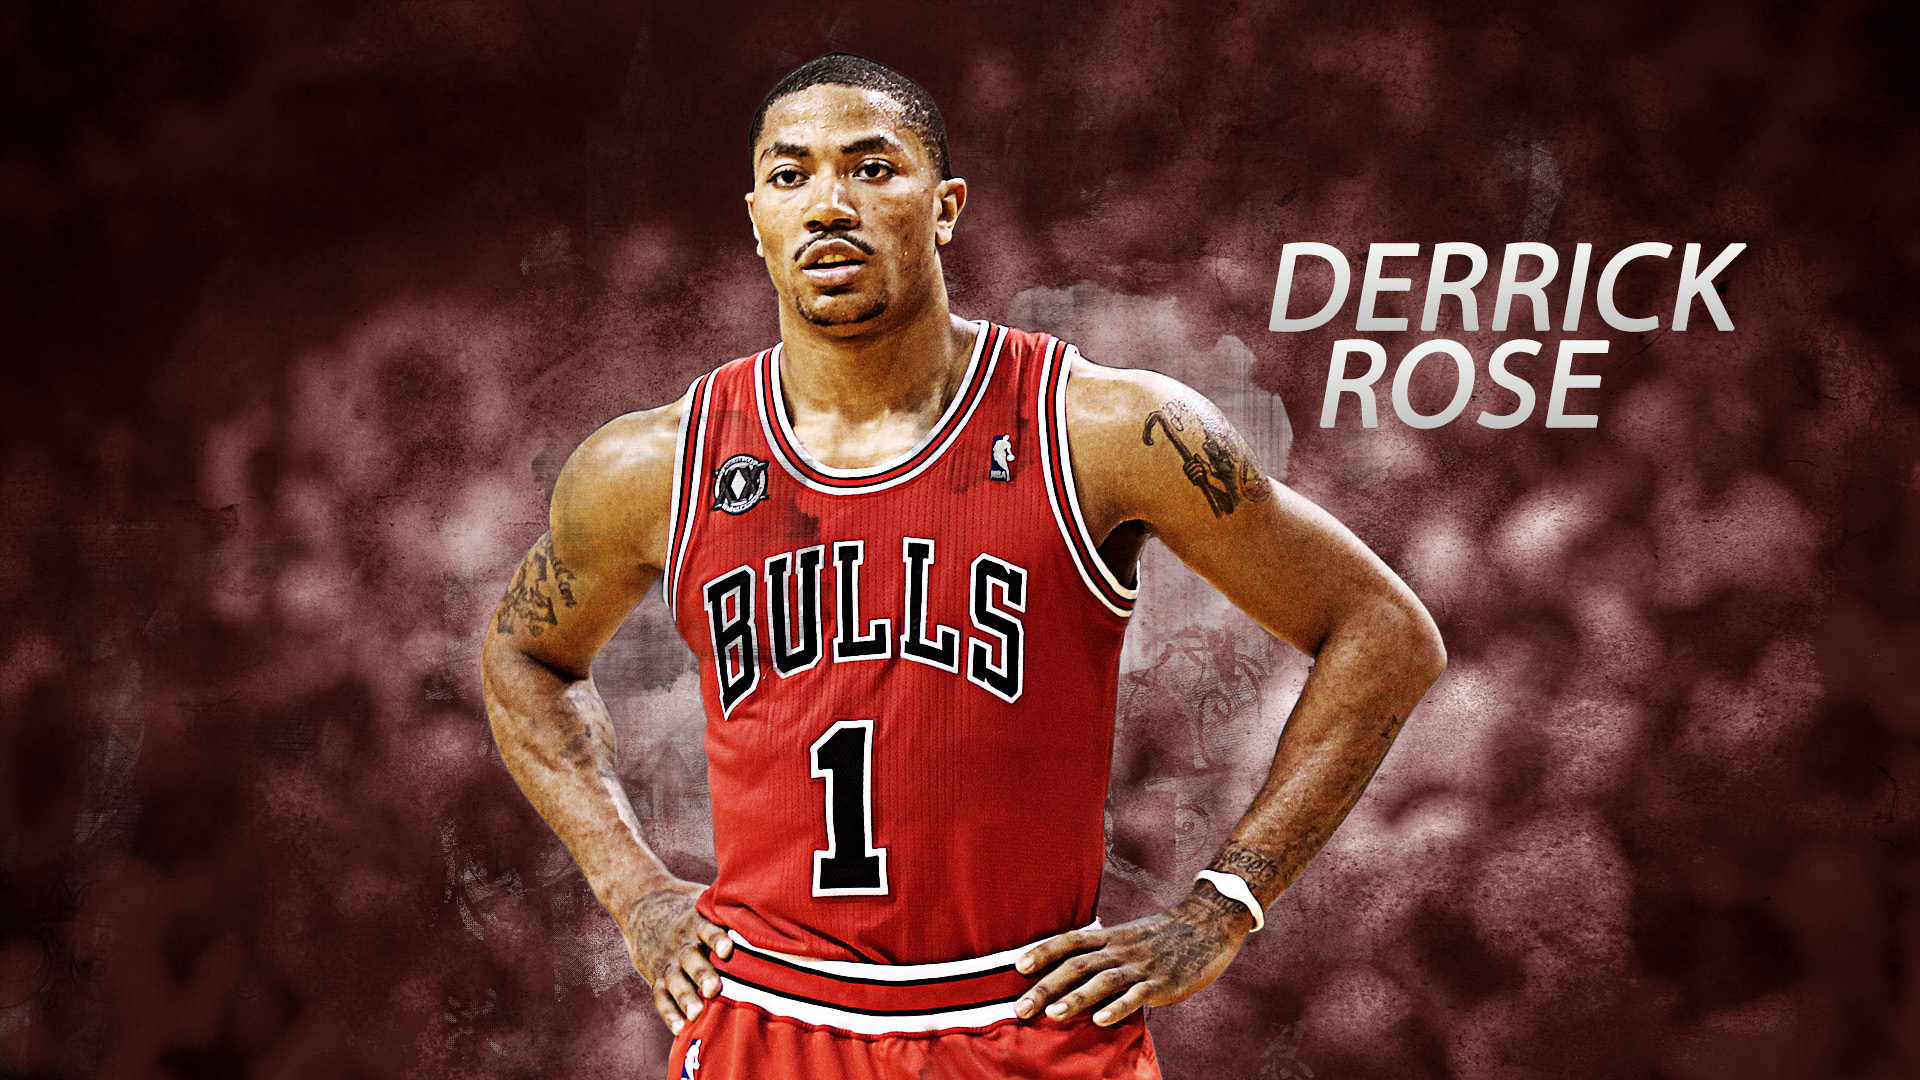 Derrick rose wallpapers images photos pictures backgrounds - Derrick rose wallpaper ...